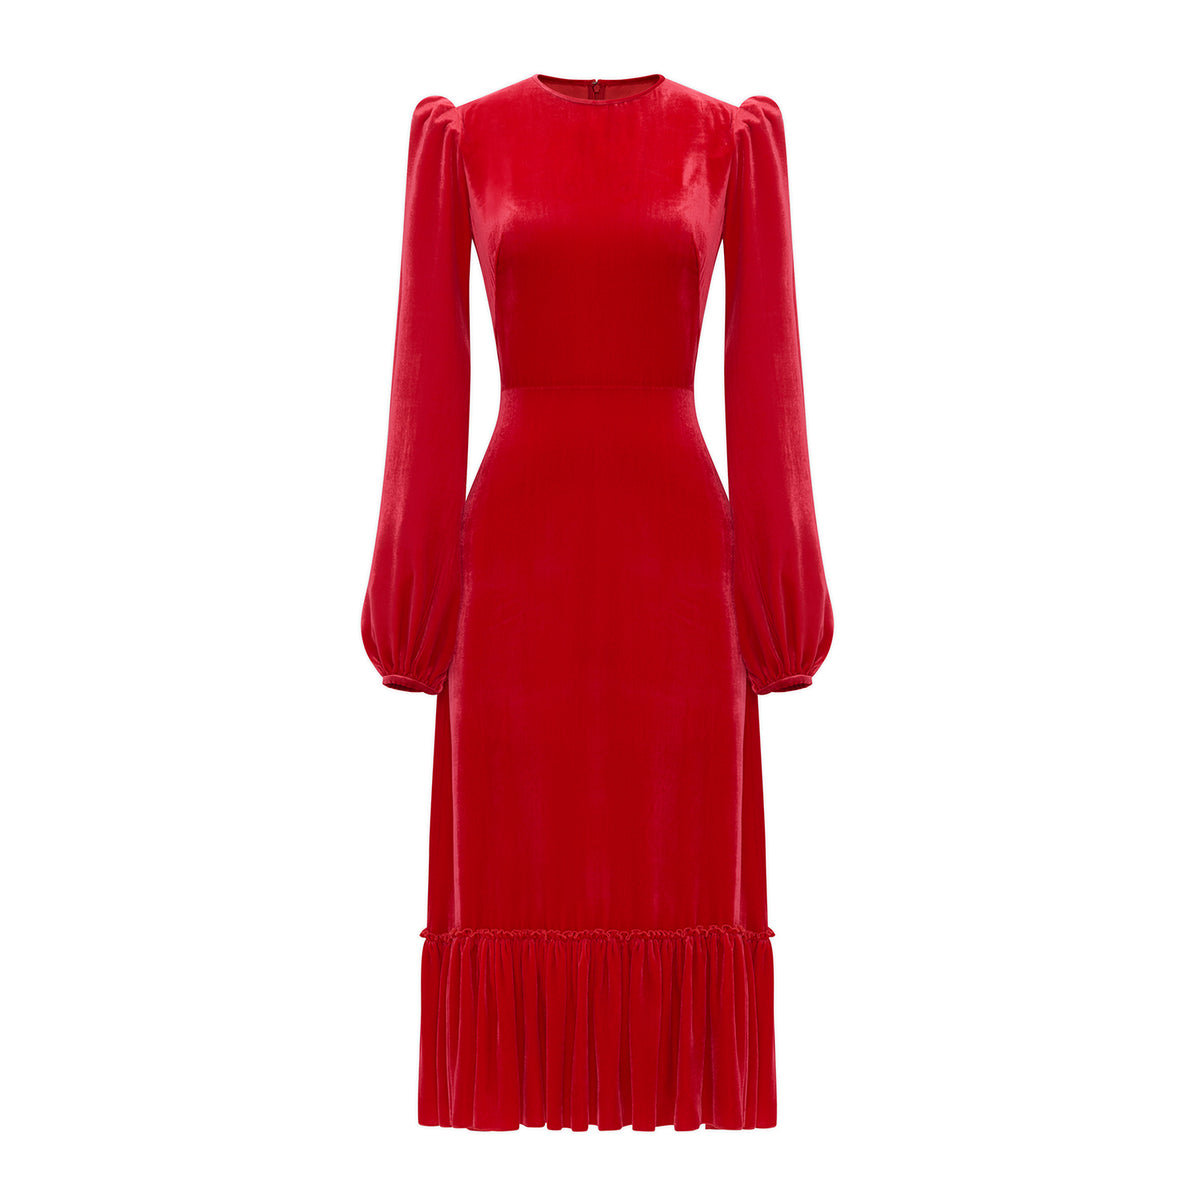 THE RED VELVET VENERATION DRESS